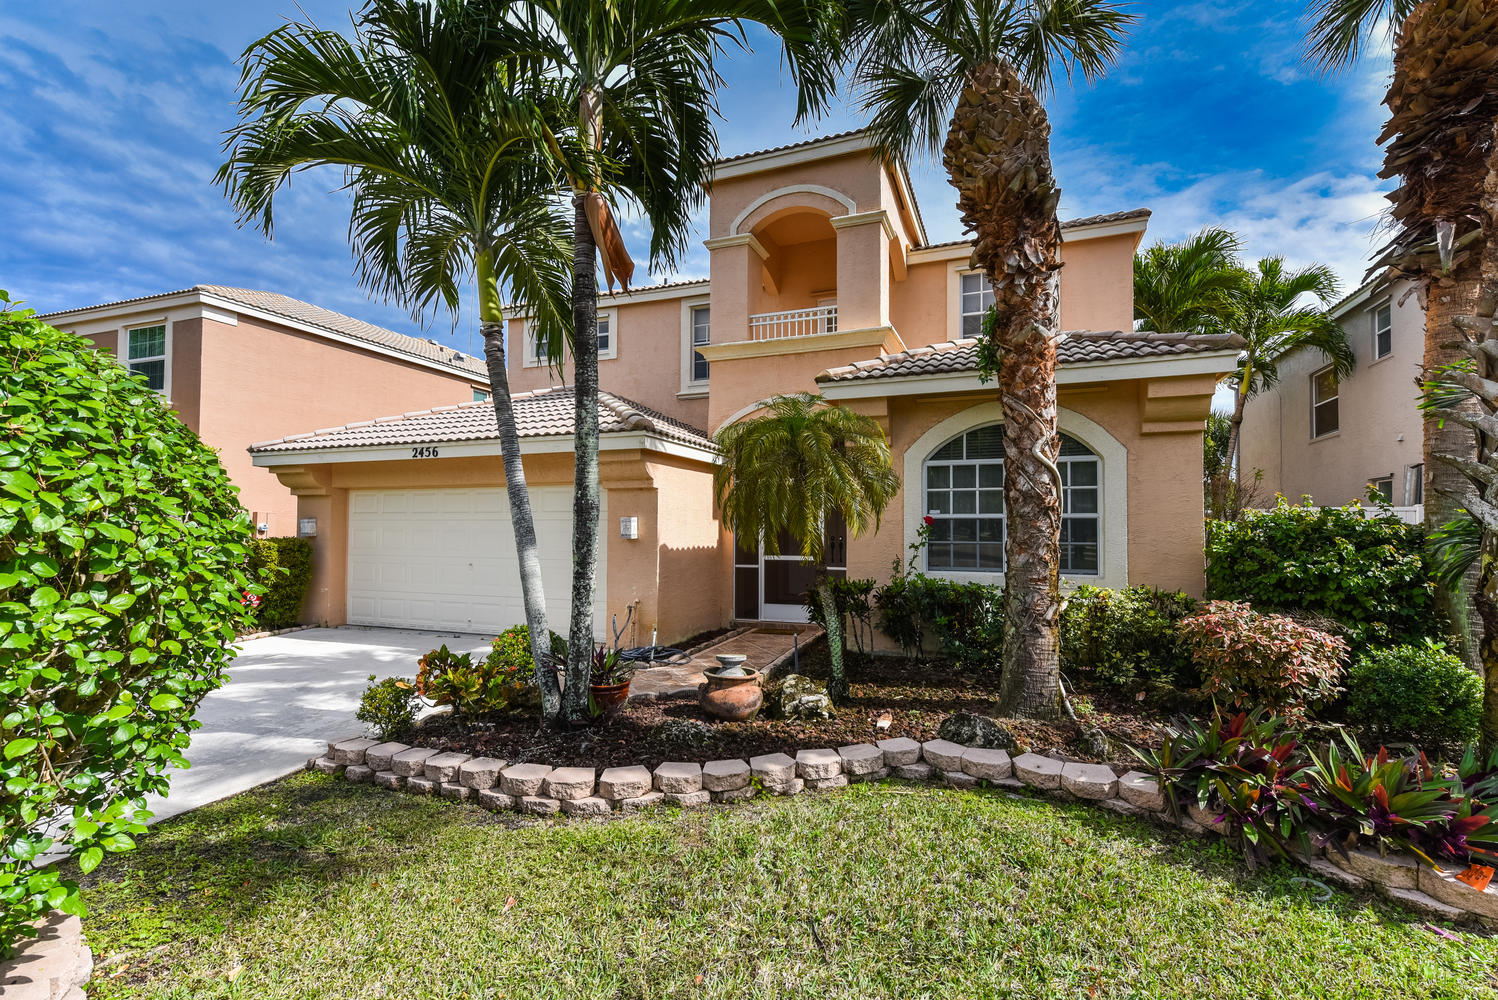 One of Royal Palm Beach 6 Bedroom Homes for Sale at 2456 Westmont Place